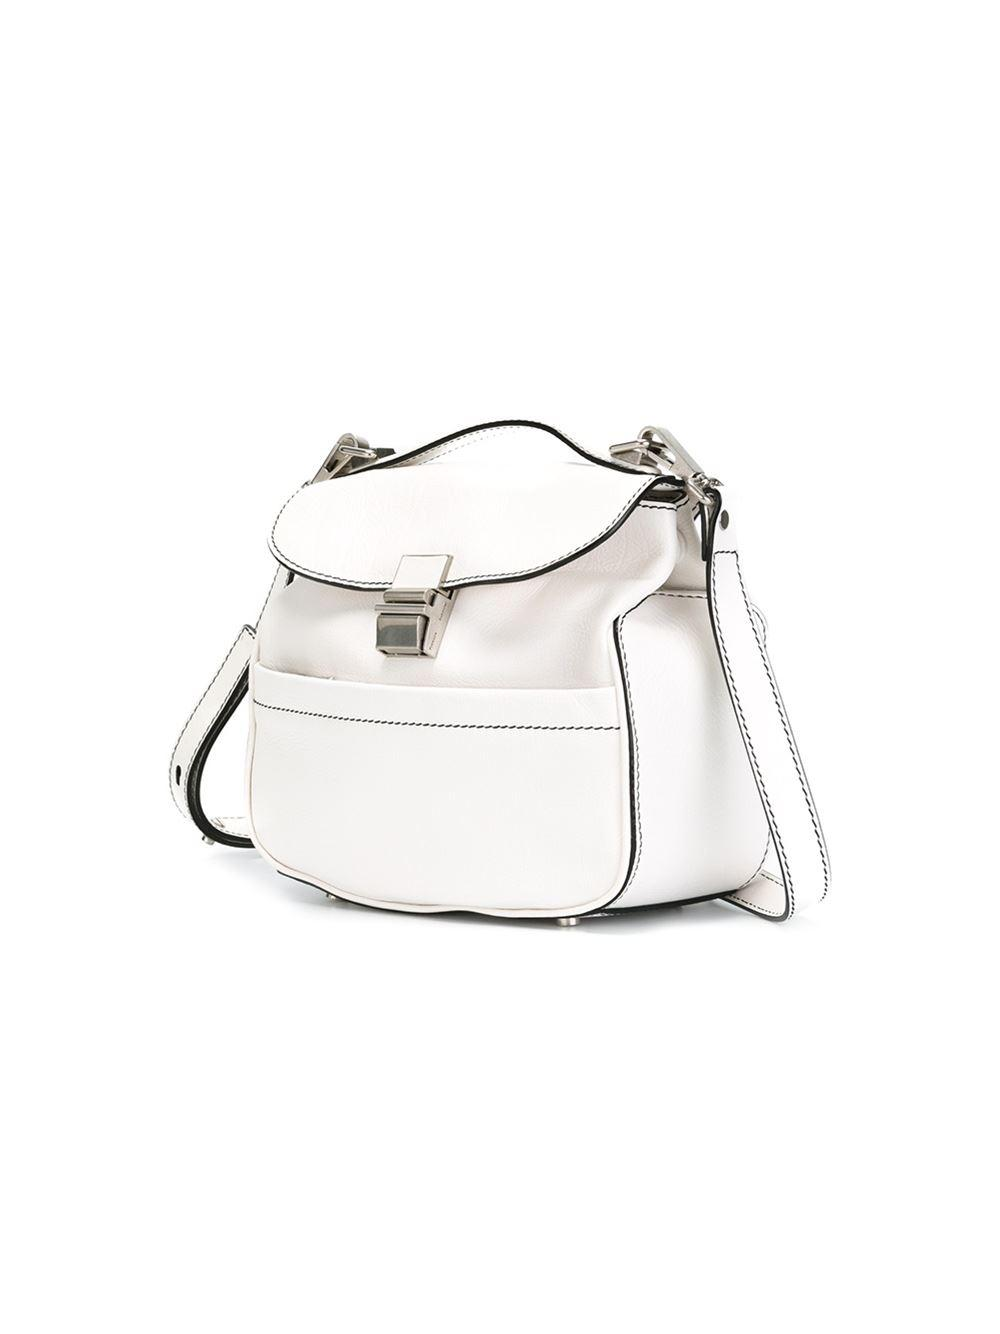 PROENZA SCHOULER  'Kent' shoulder bag On Sale @ Farfetch